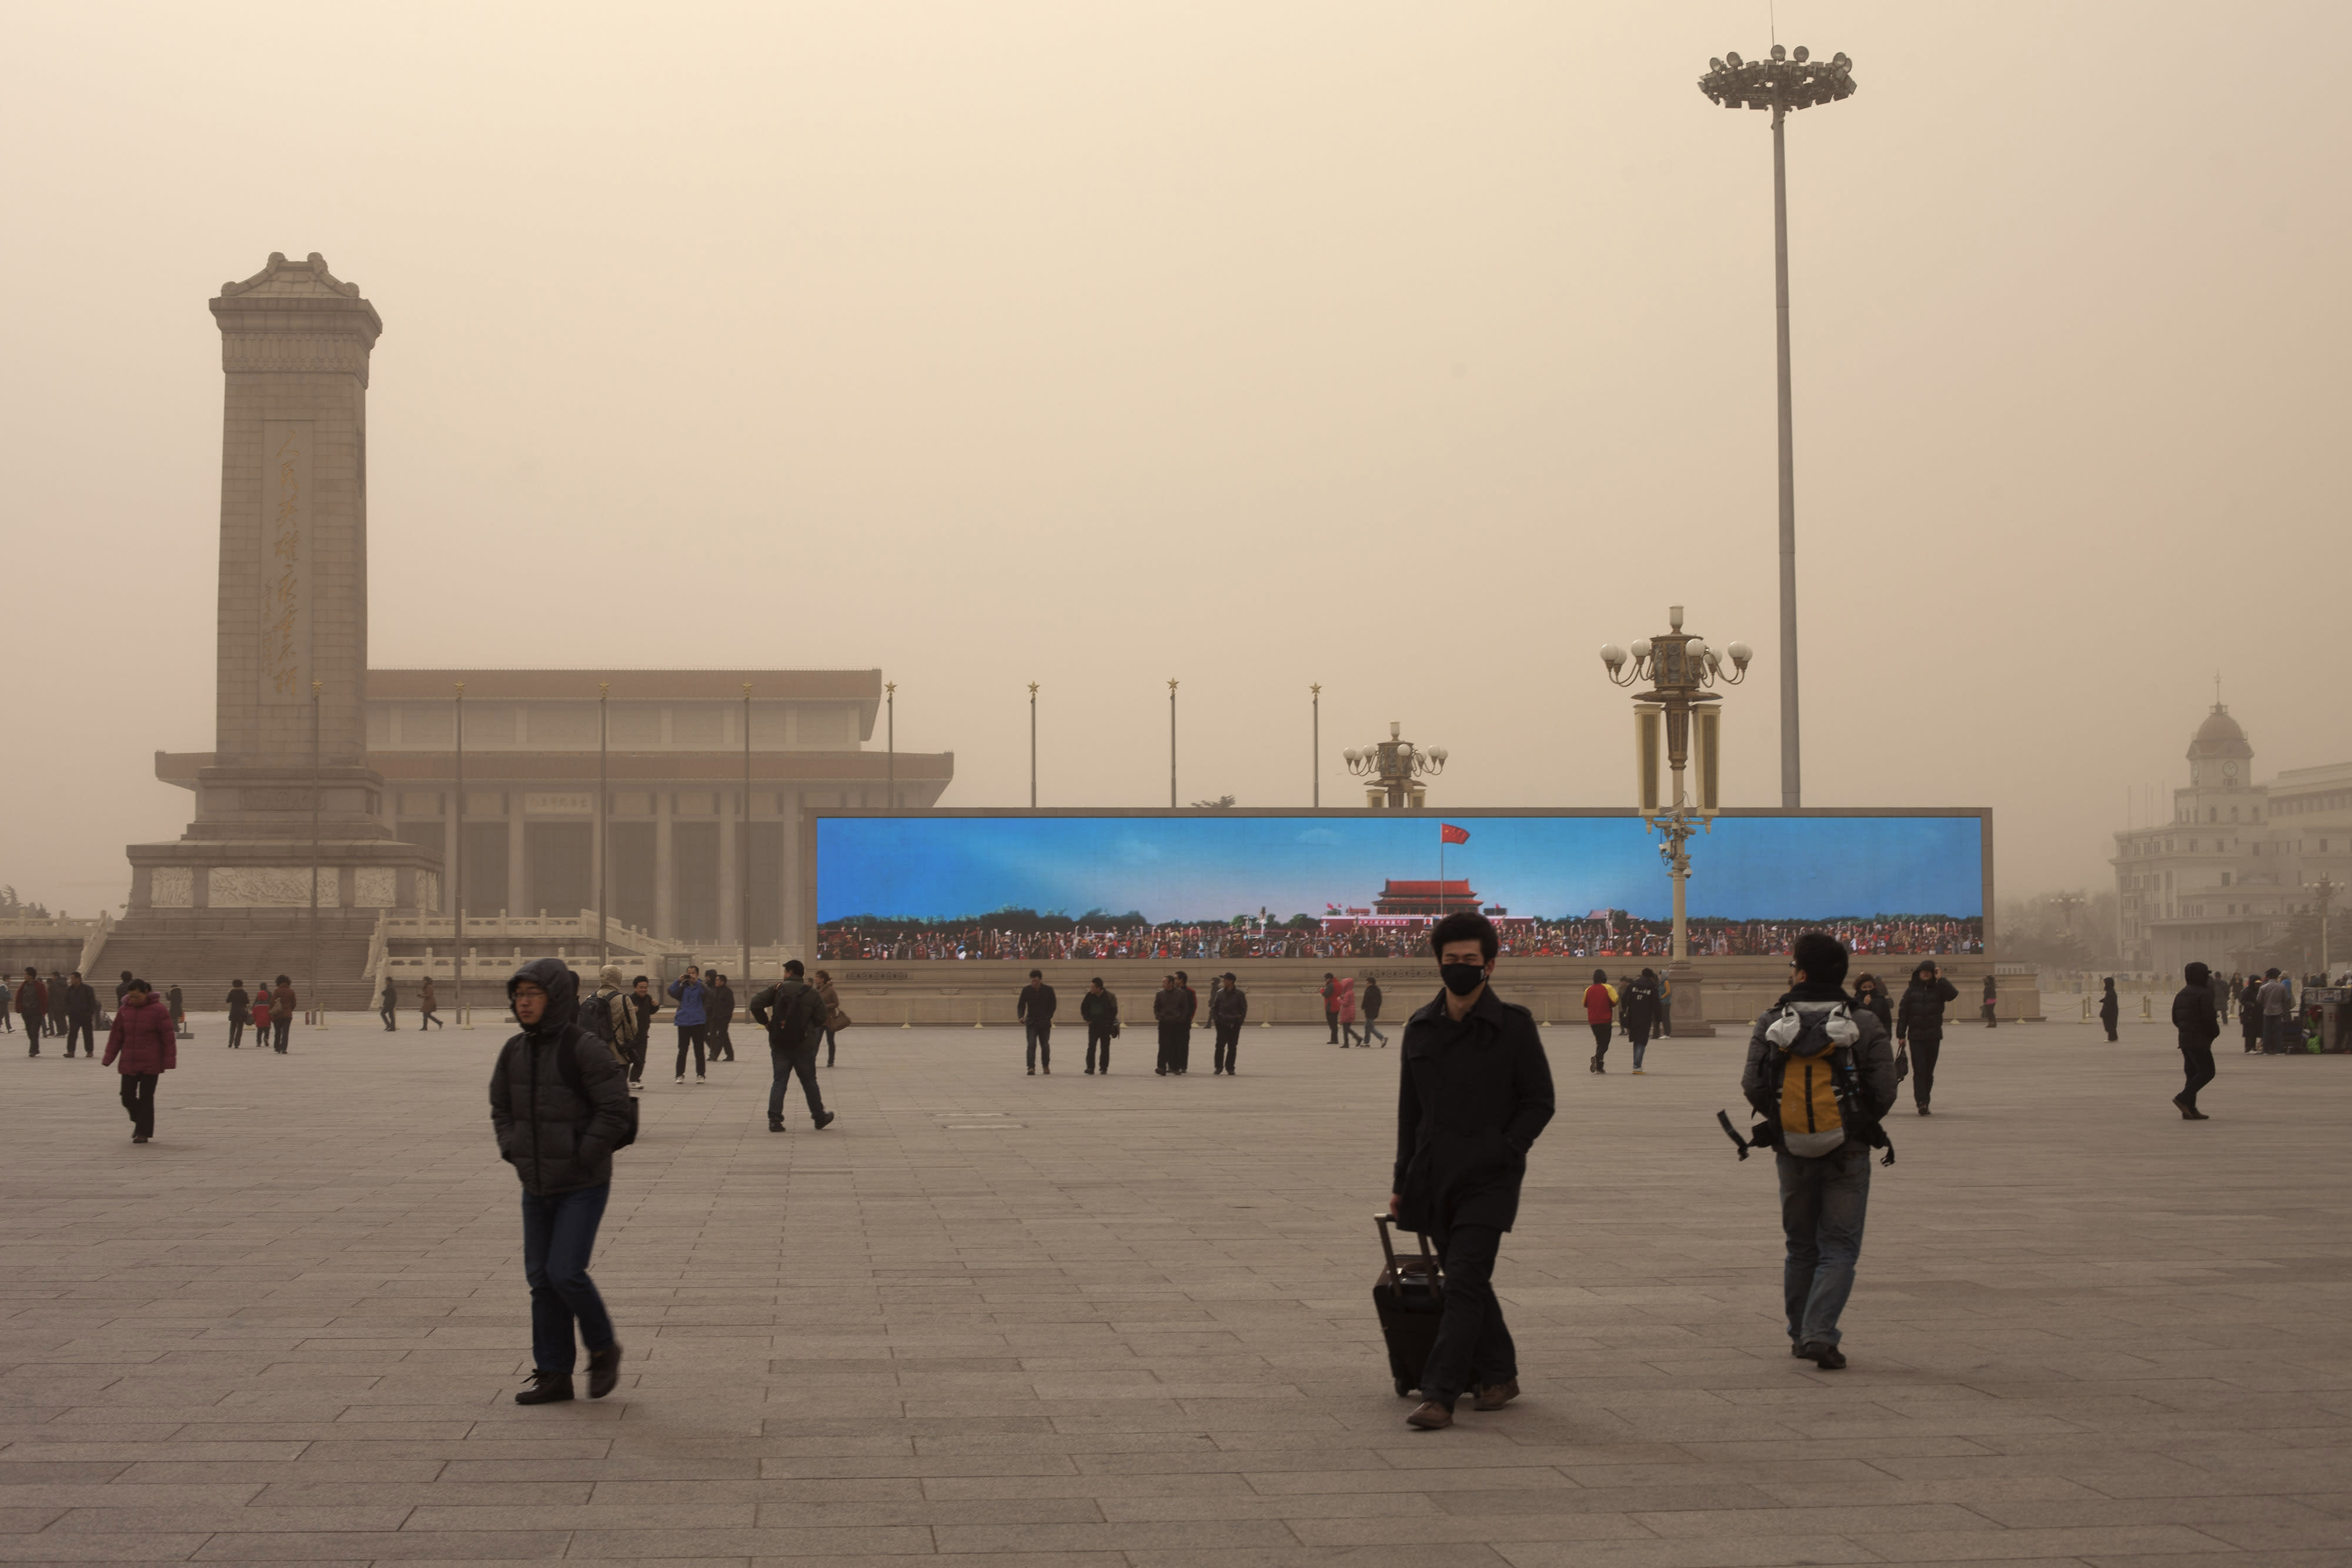 China pollution photo essay